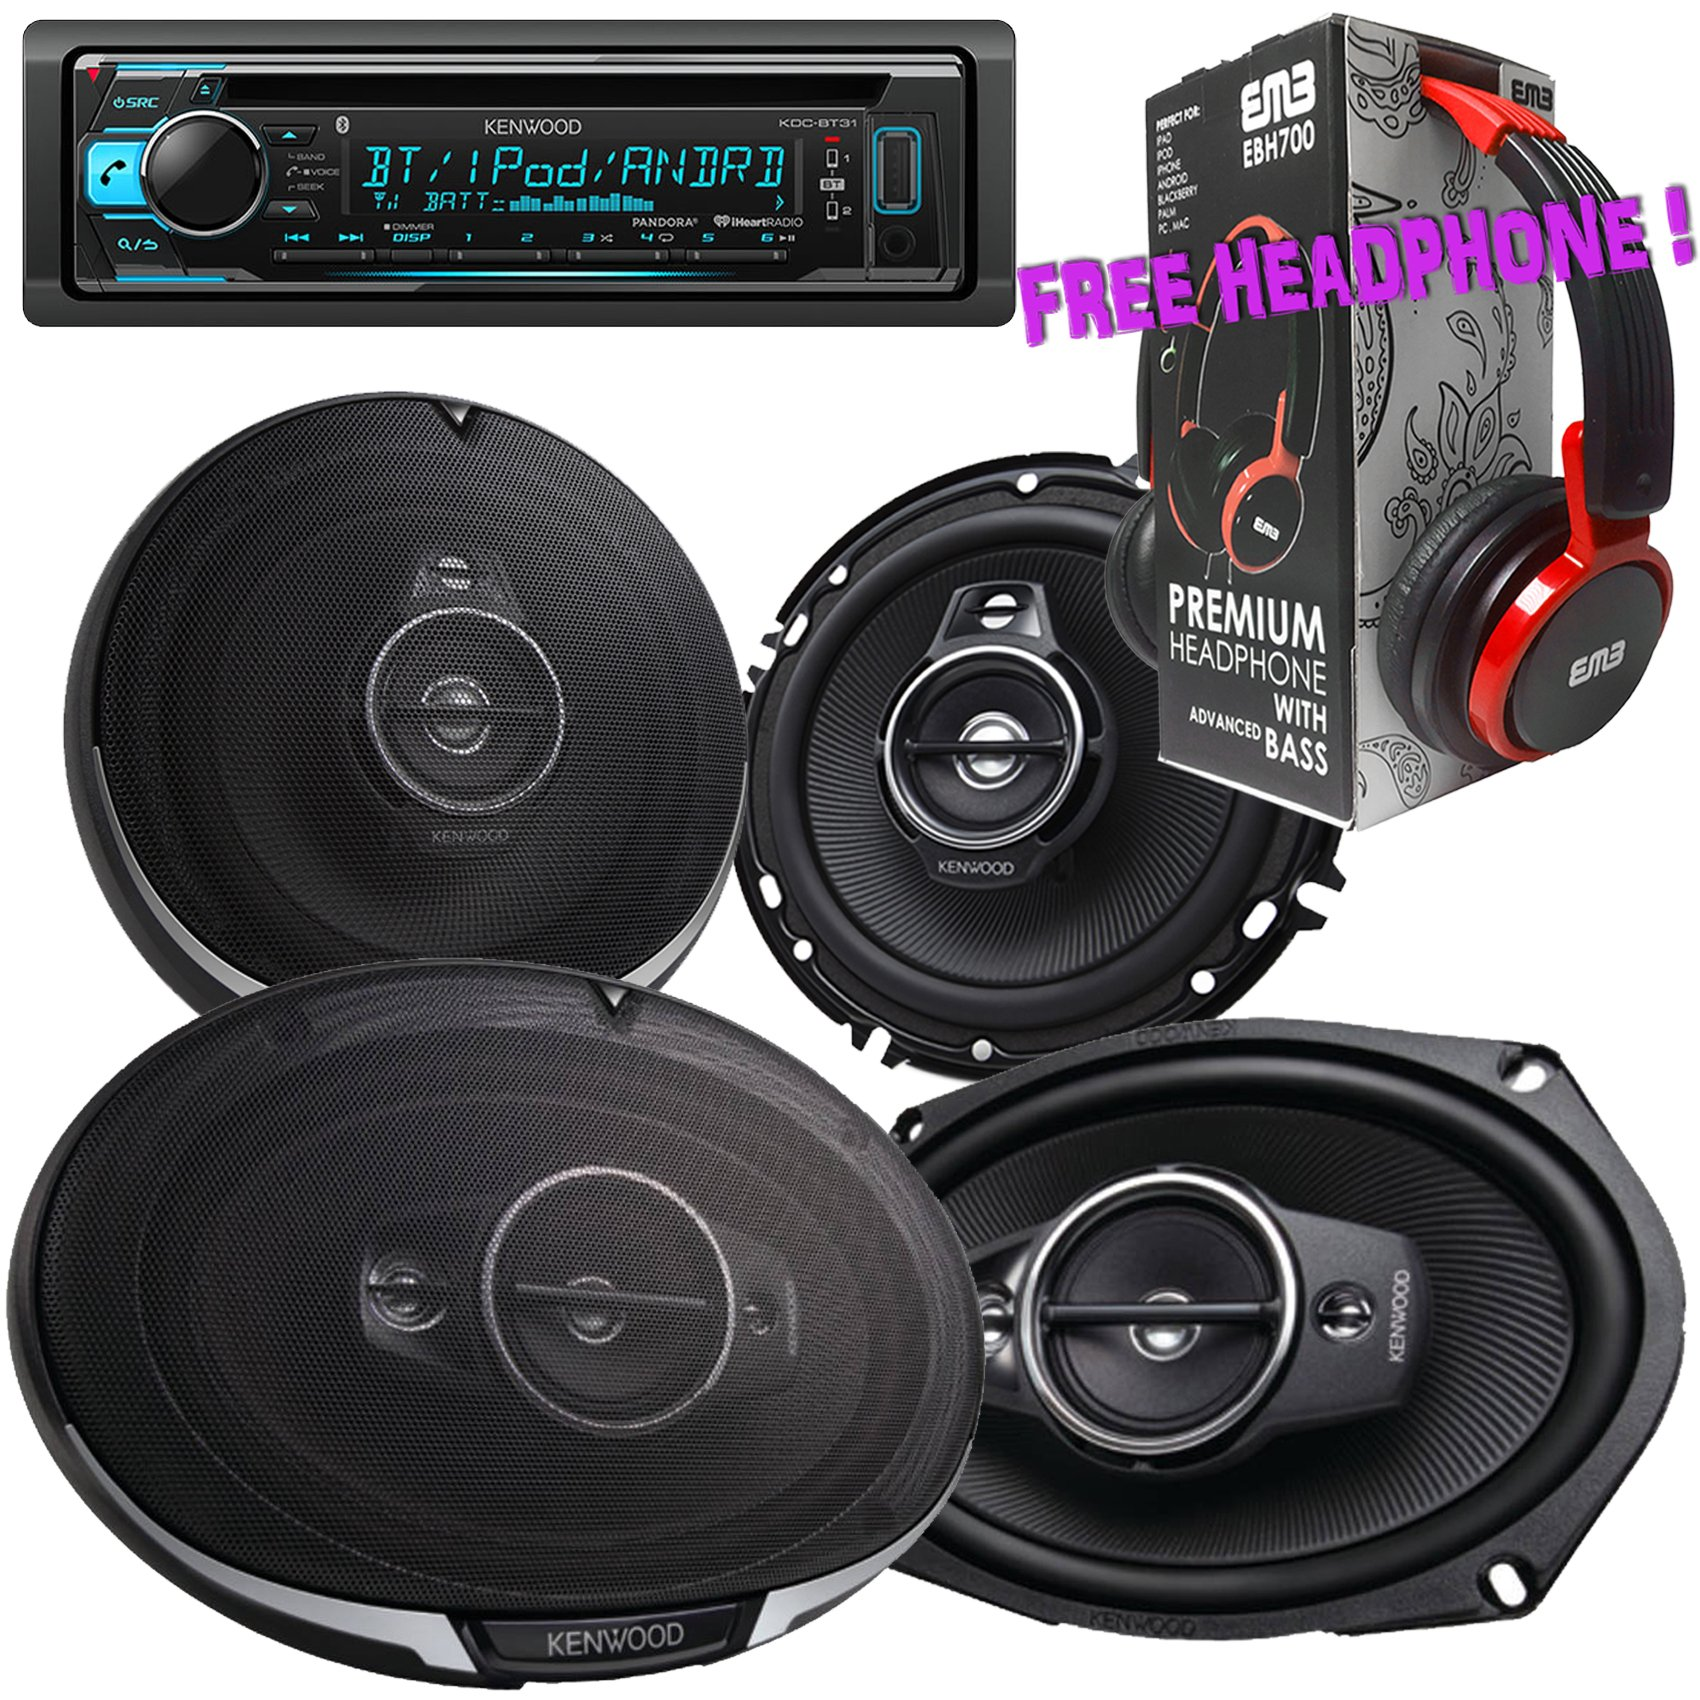 Package - Pair of Kenwood KFC- 6985PS 6''x9'' 600W 4-way + Pair of Kenwood KFC-1695PS 320W 6-1/2'' 3-way Car Speakers + Kenwood KDC-BT31 Single-DIN Bluetooth CD Receiver + Free EBH700 Headphone